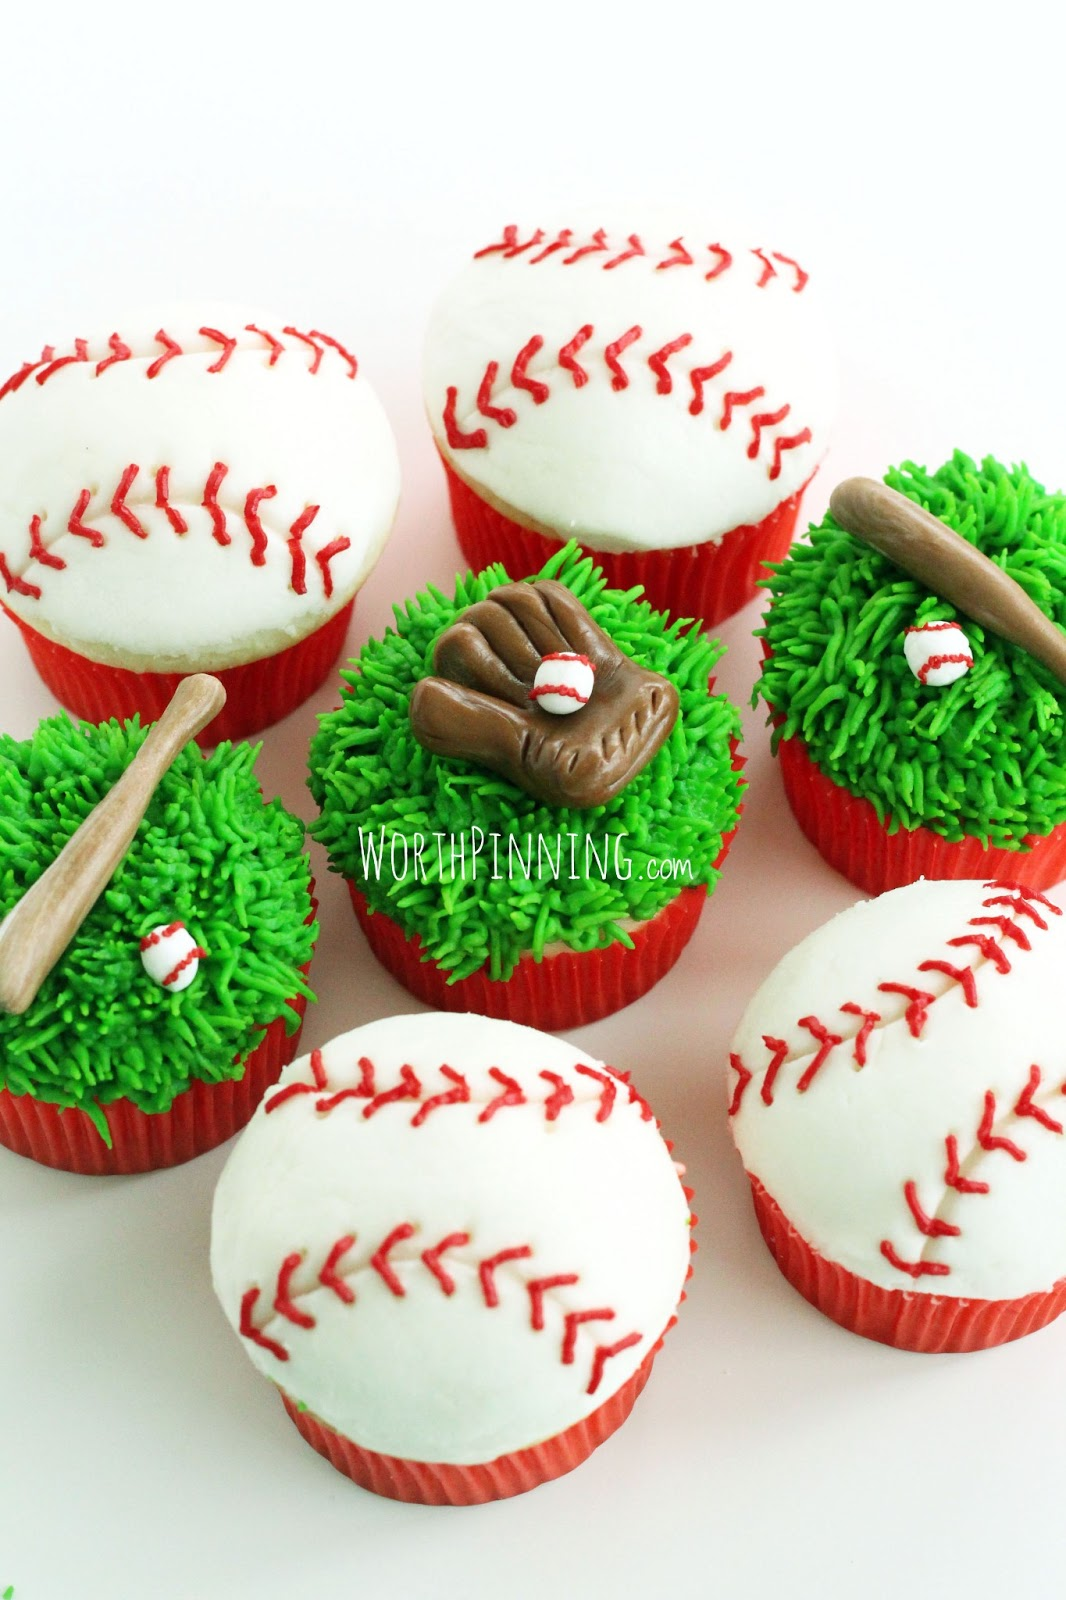 How to Decorate BaseballThemed Cupcakes How to Decorate BaseballThemed Cupcakes new pics